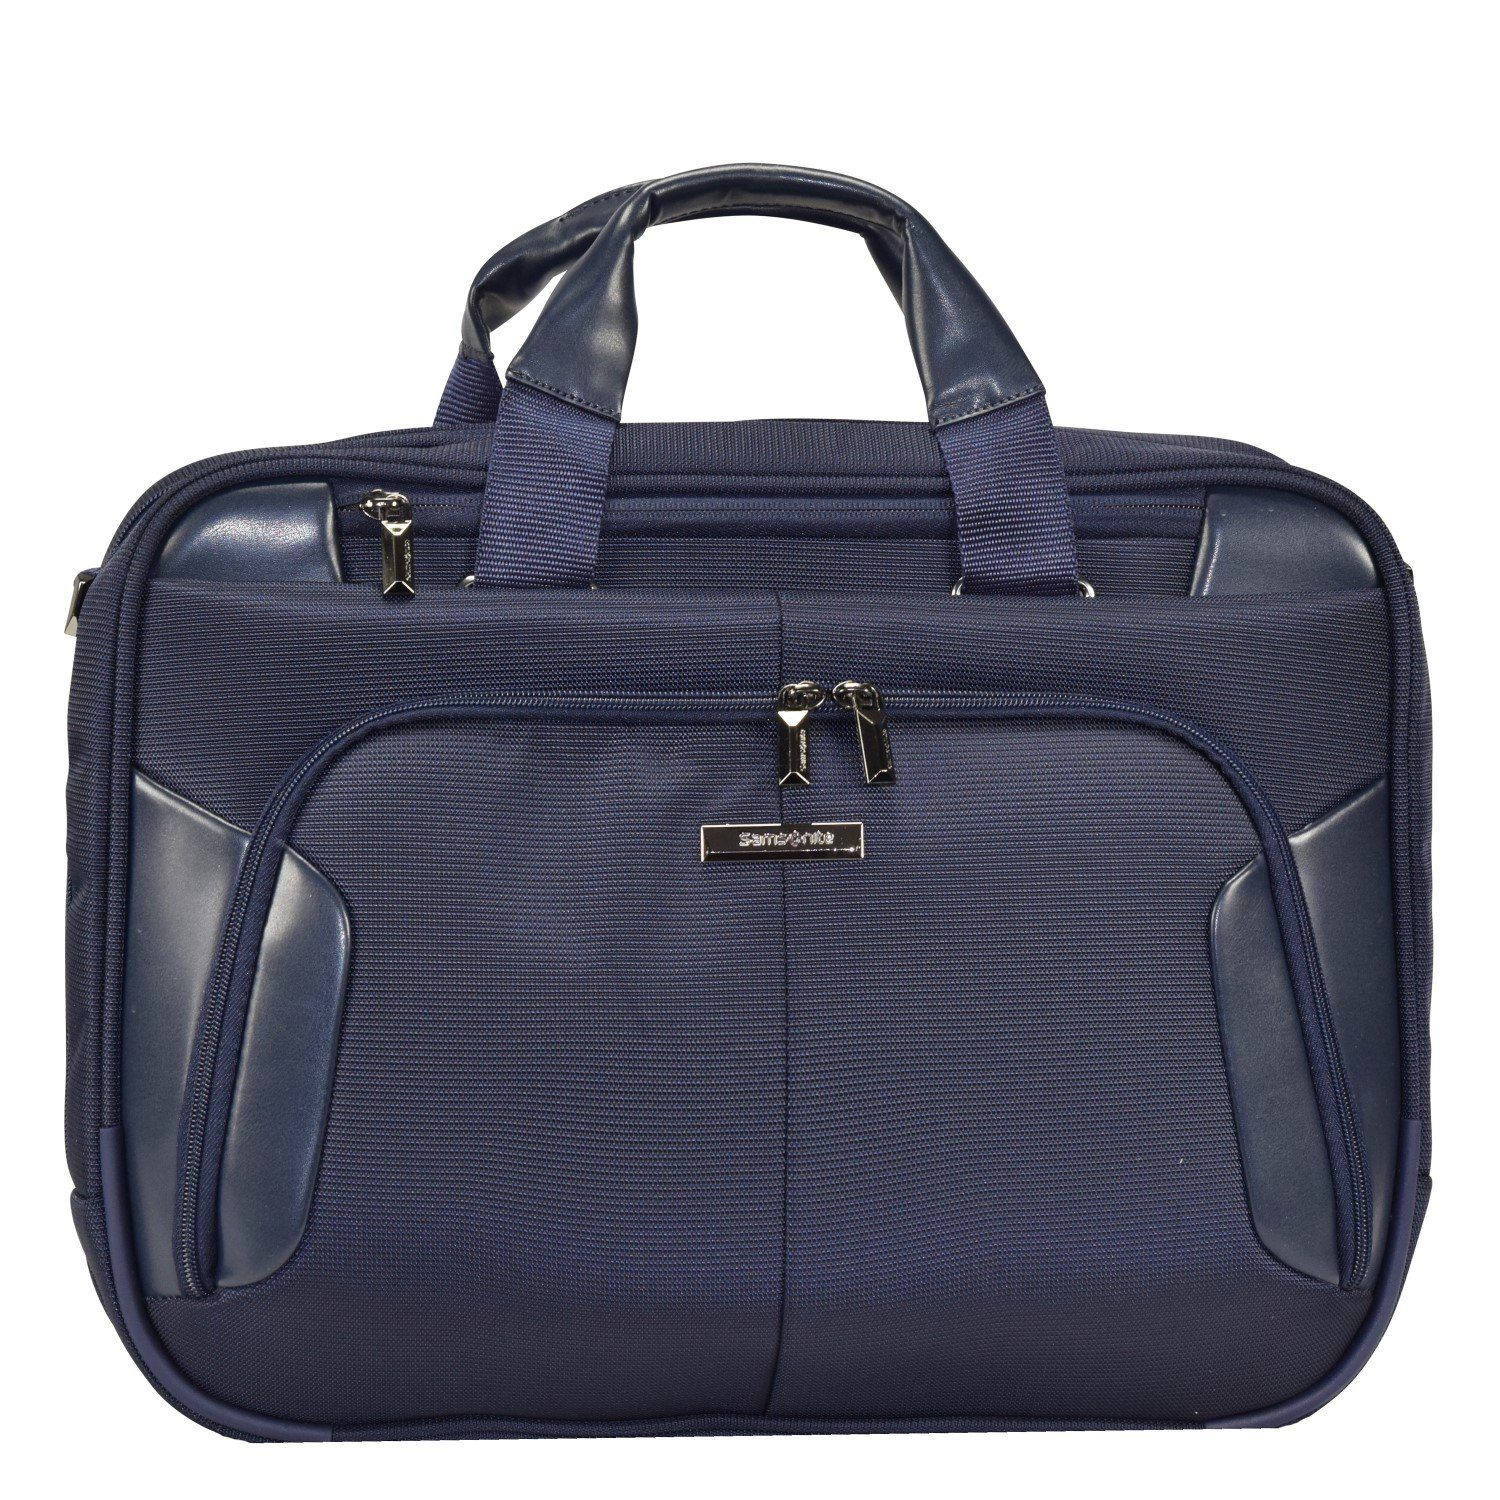 Samsonite Samsonite XBR Aktentasche 44 cm Laptopfach